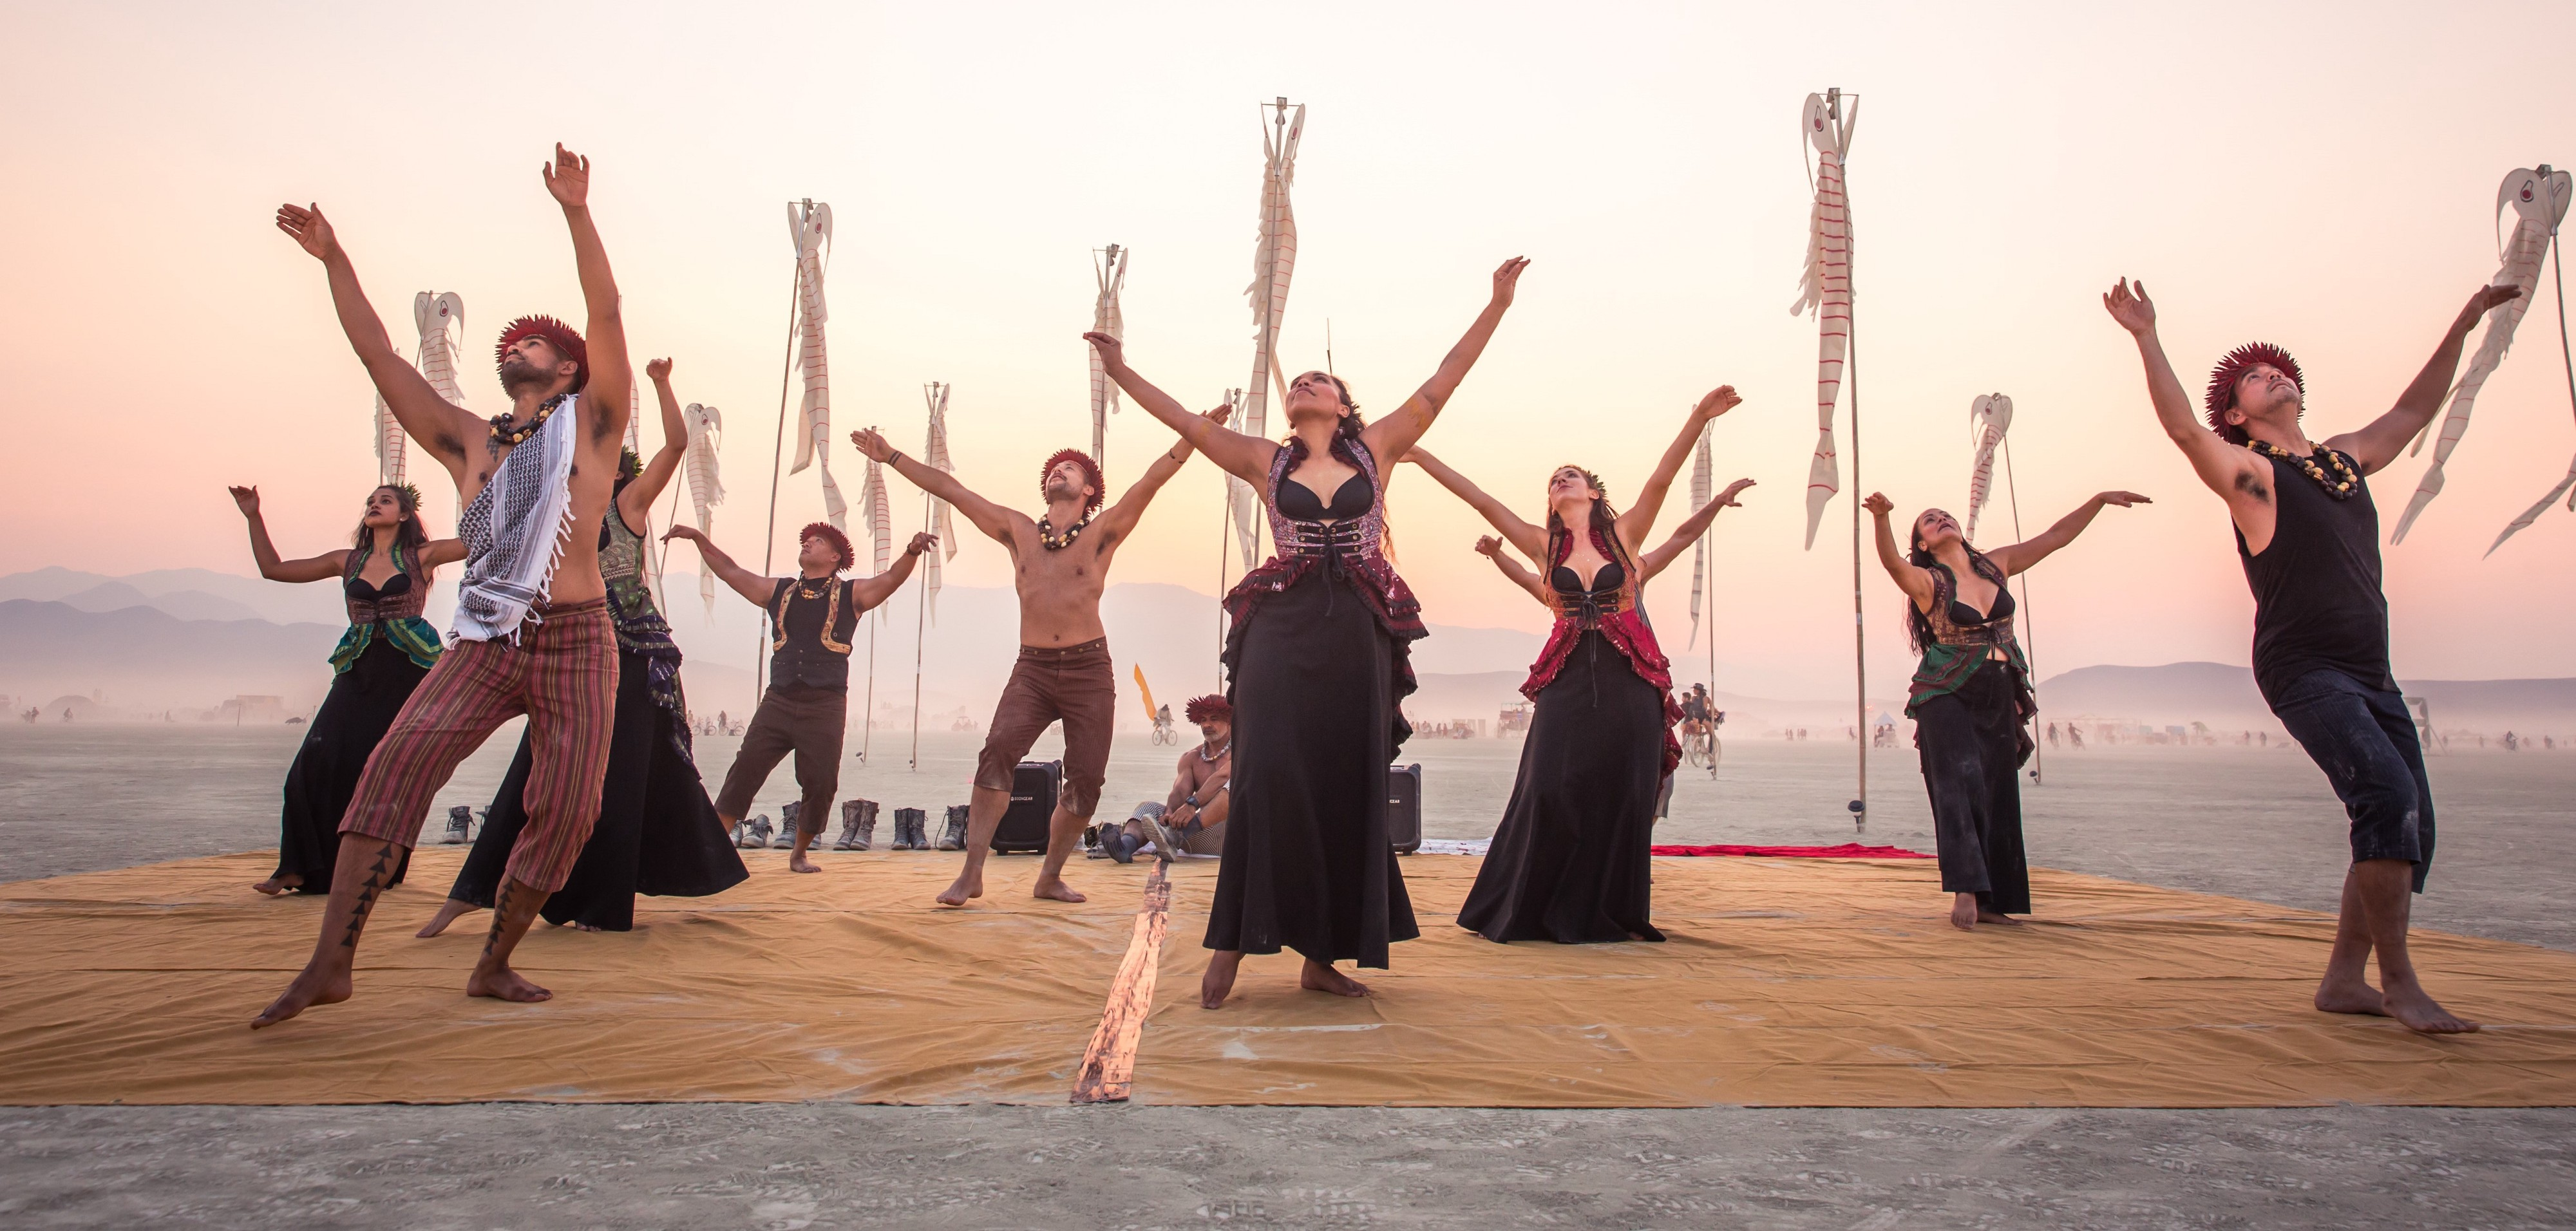 On a yellow fabric in the middle of the desert, hula performers stand with their arms raised in the air